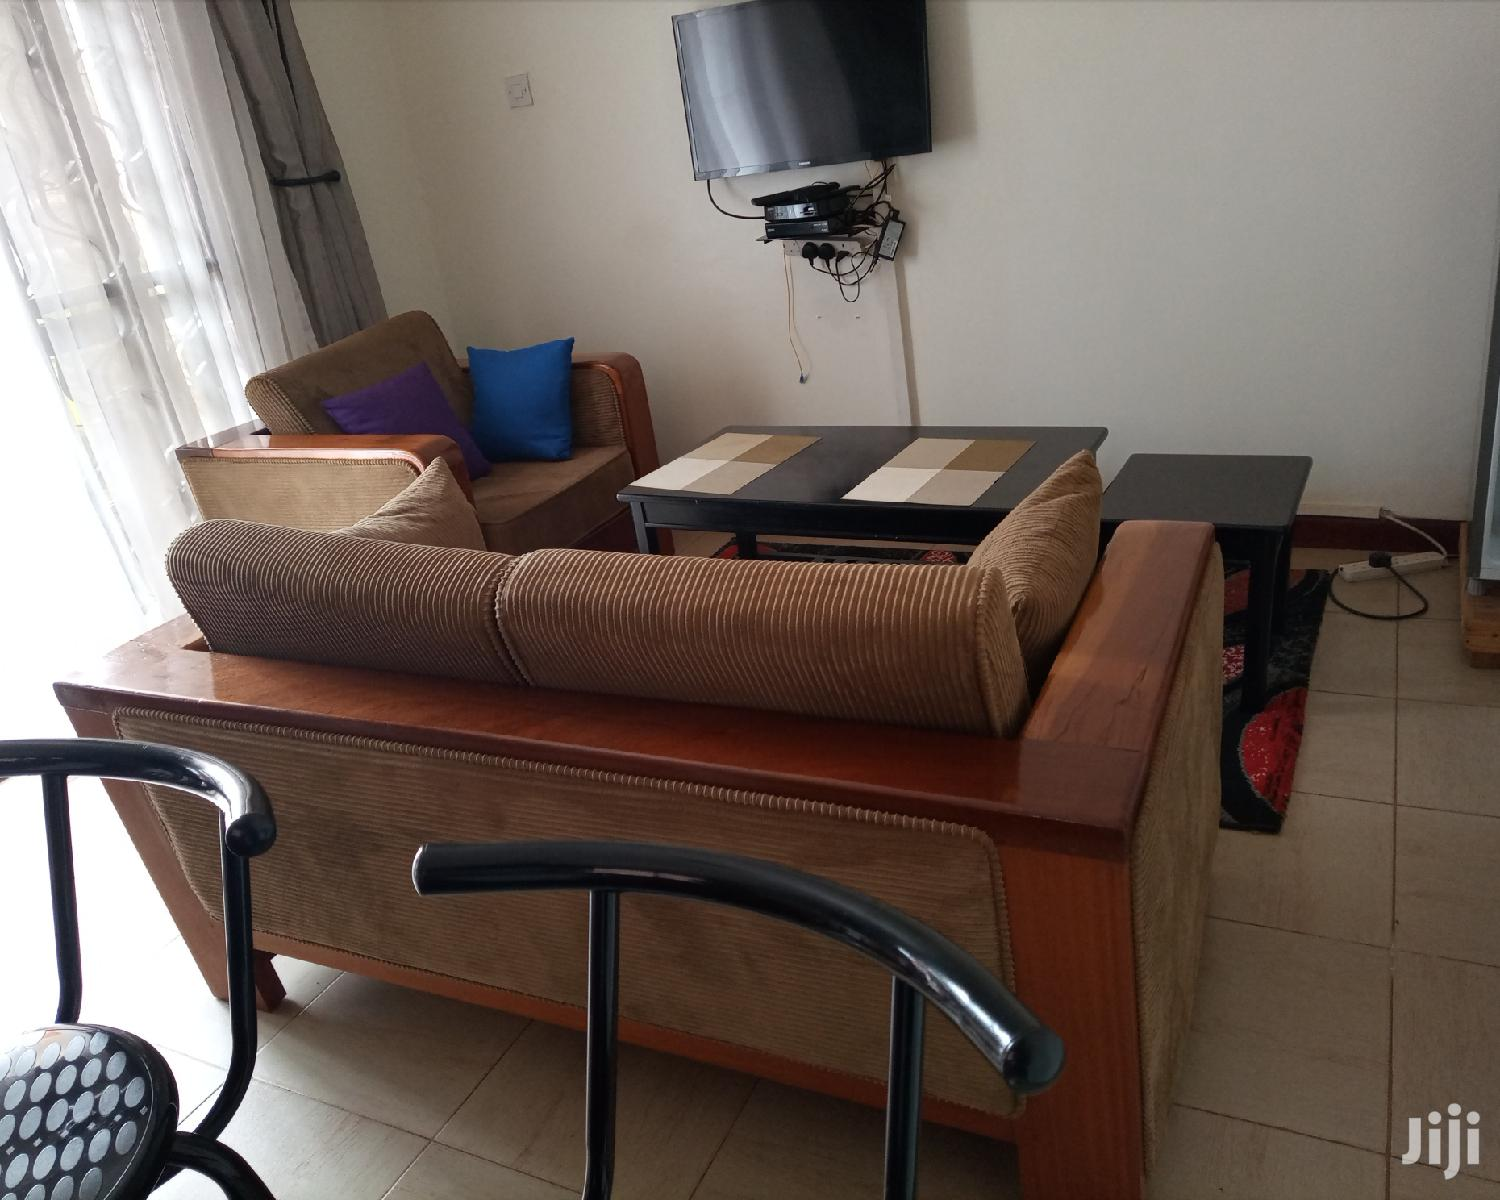 1bedrooms Furnished Apartment For Rent In Naguru | Houses & Apartments For Rent for sale in Kampala, Central Region, Uganda